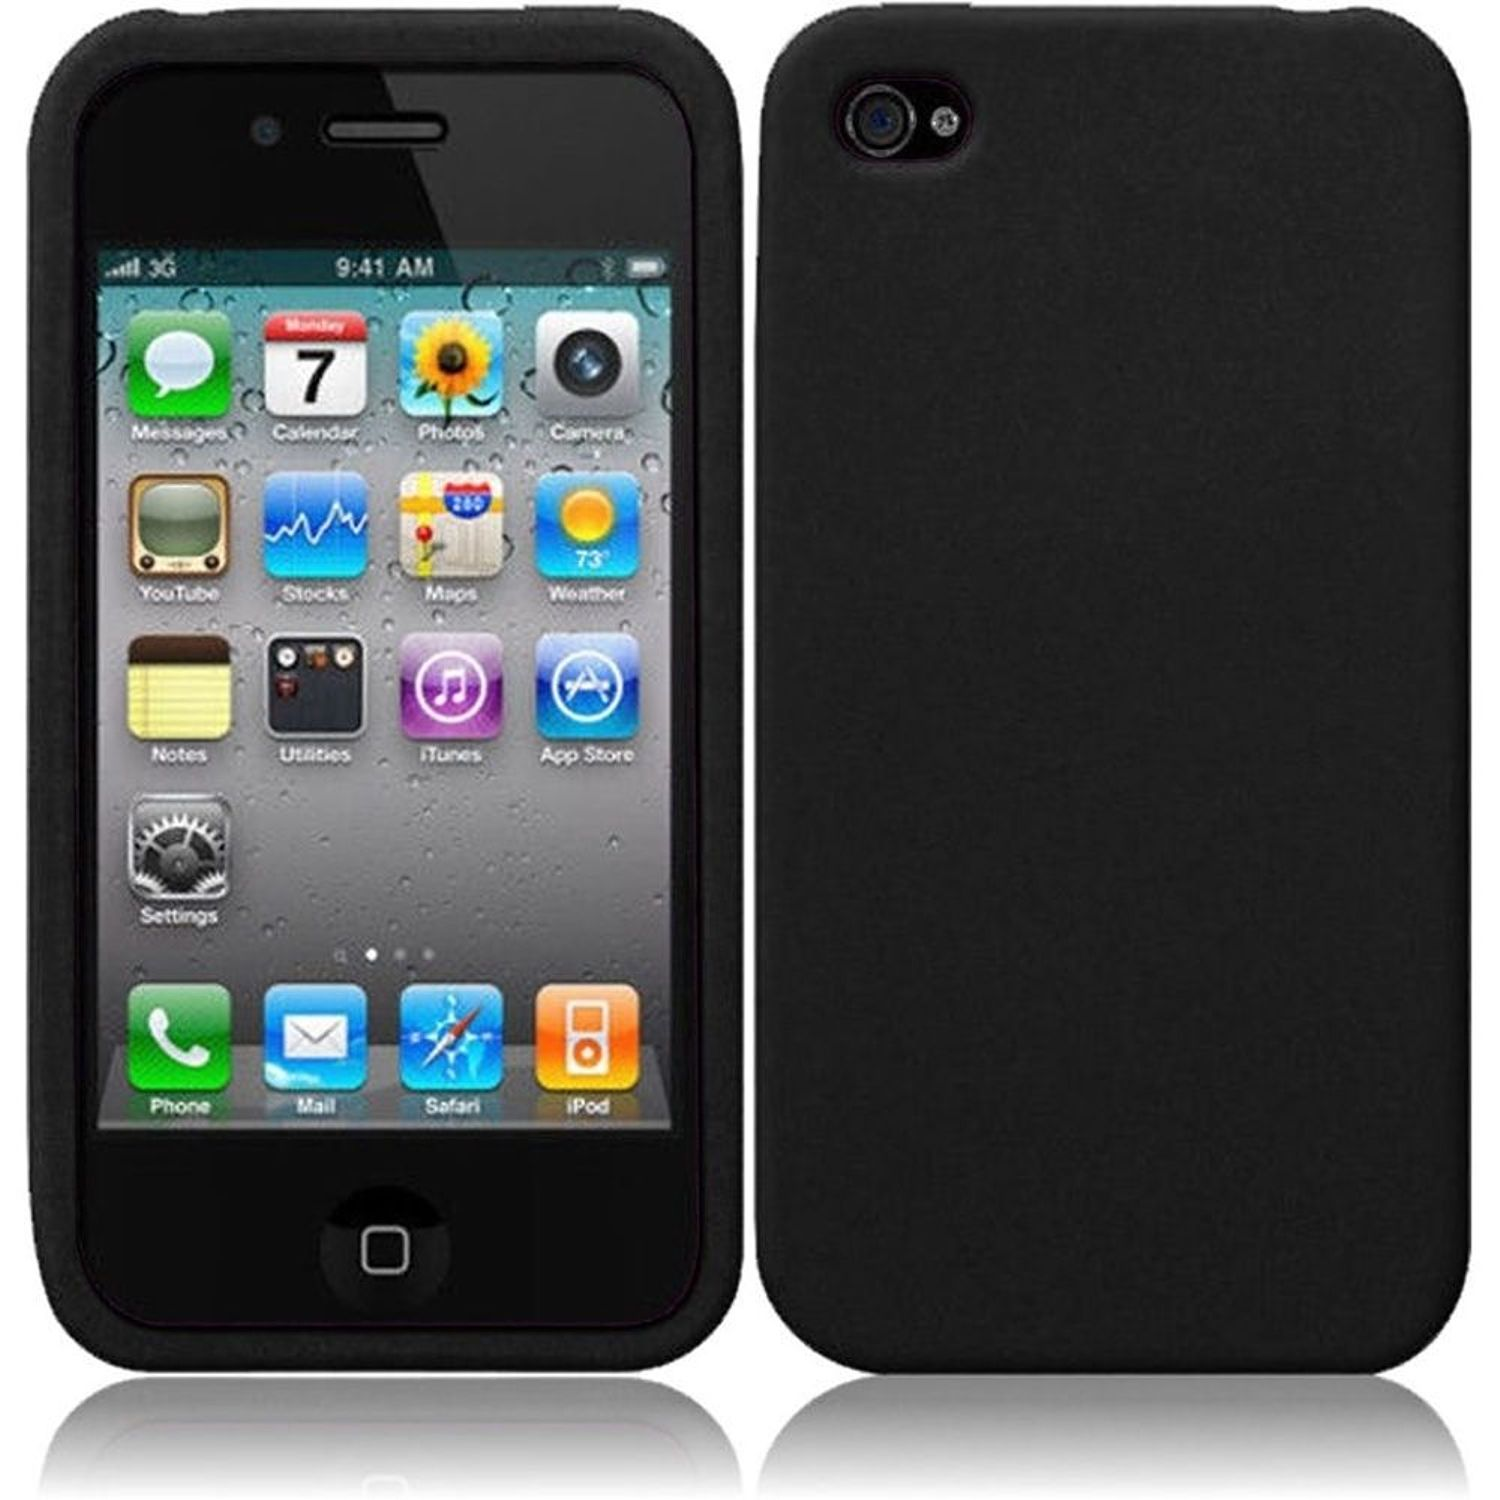 Insten For Apple iPhone 4 / 4SGS 4G CDMA GSM Silicone Soft Skin Cover Case Black